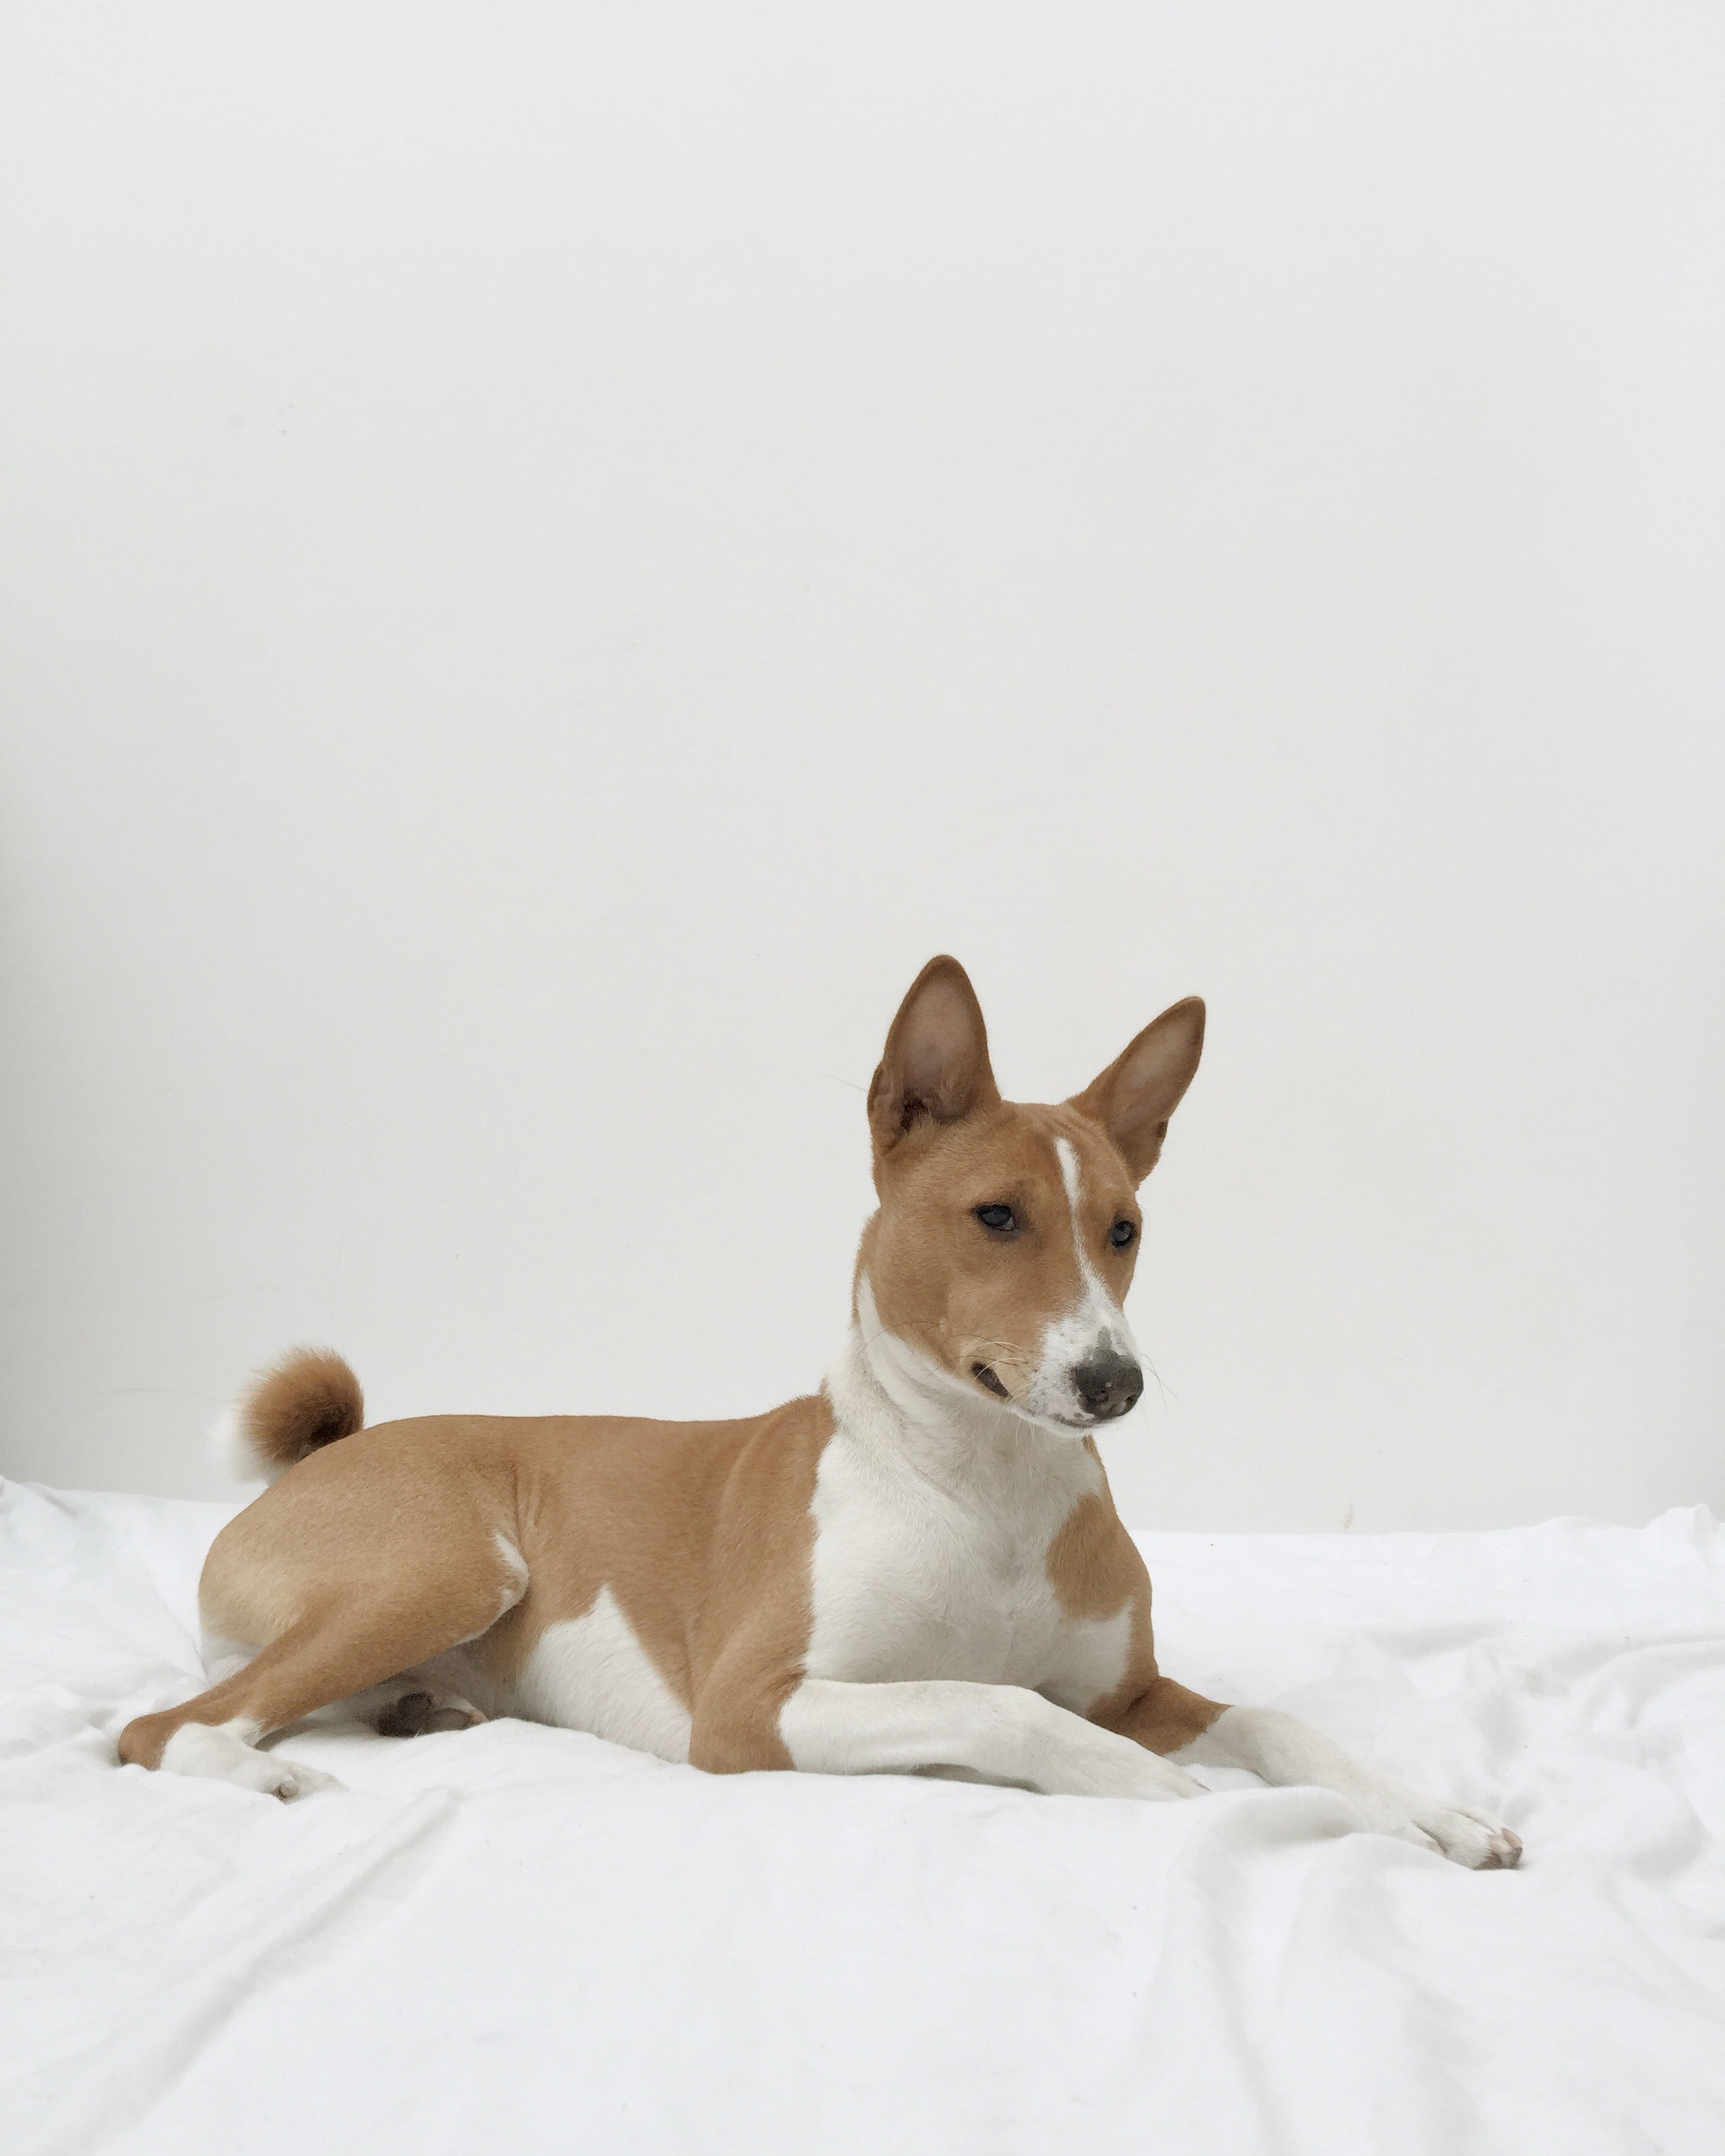 A brown and white dog sitting on a white blanket.